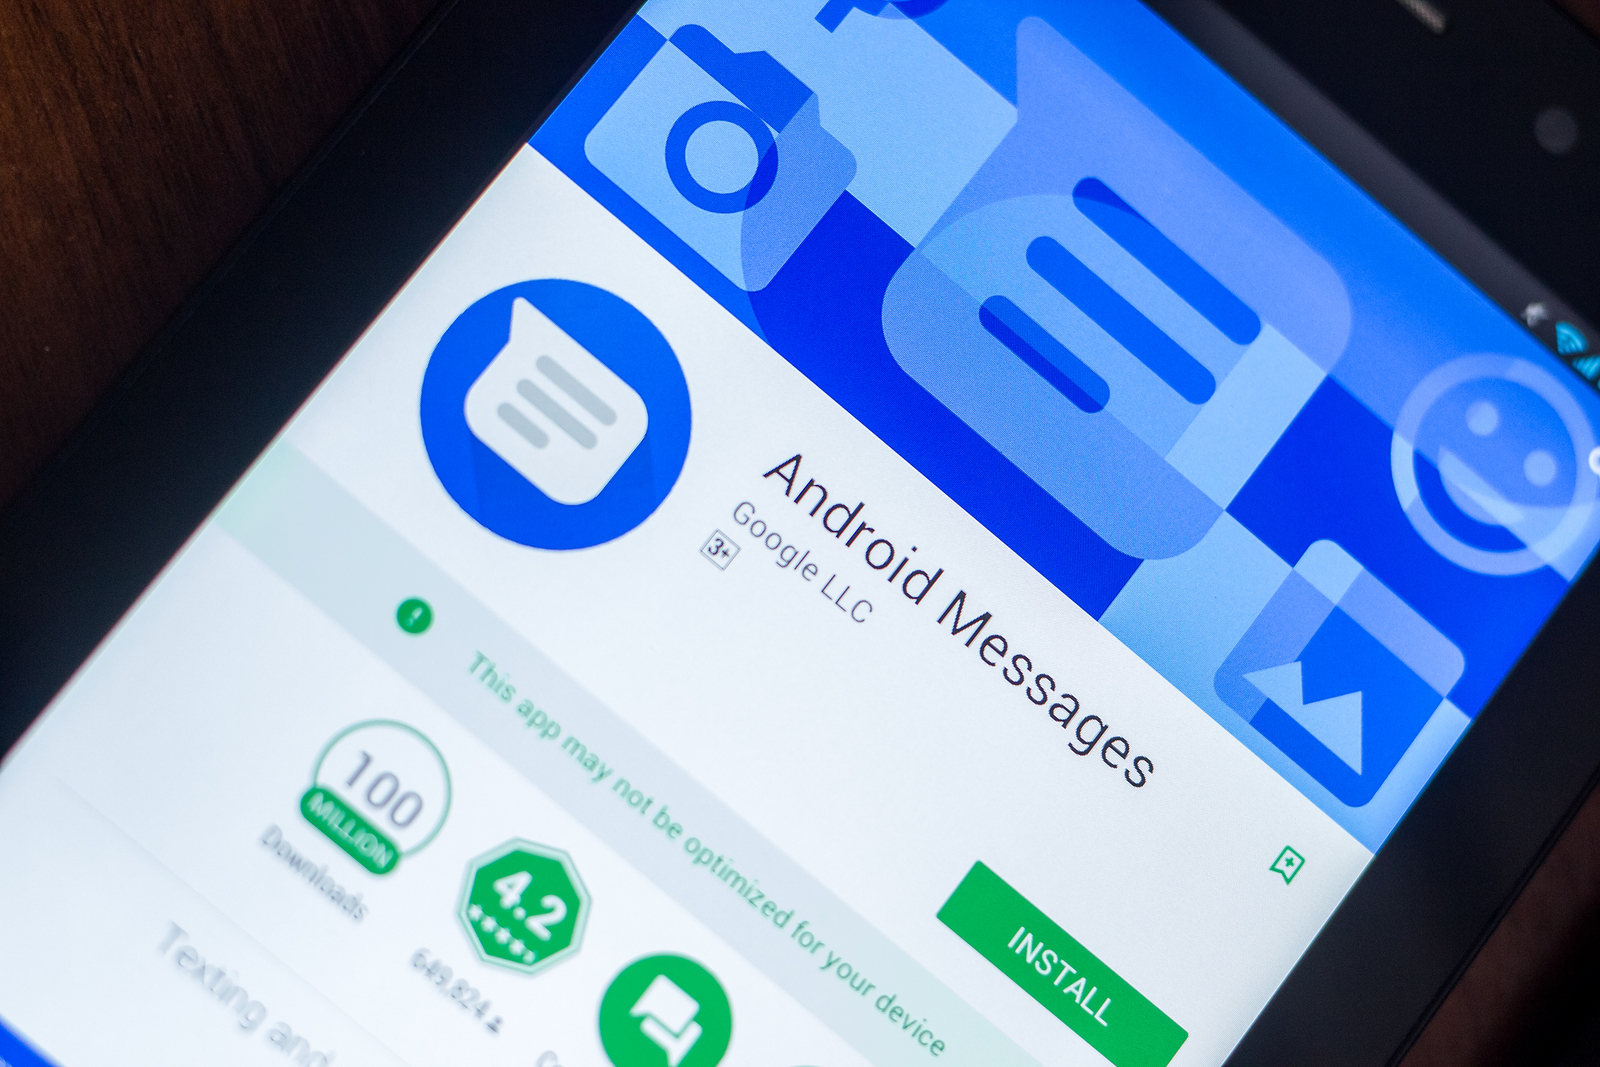 The desktop app is great, but Android Messages still aren't